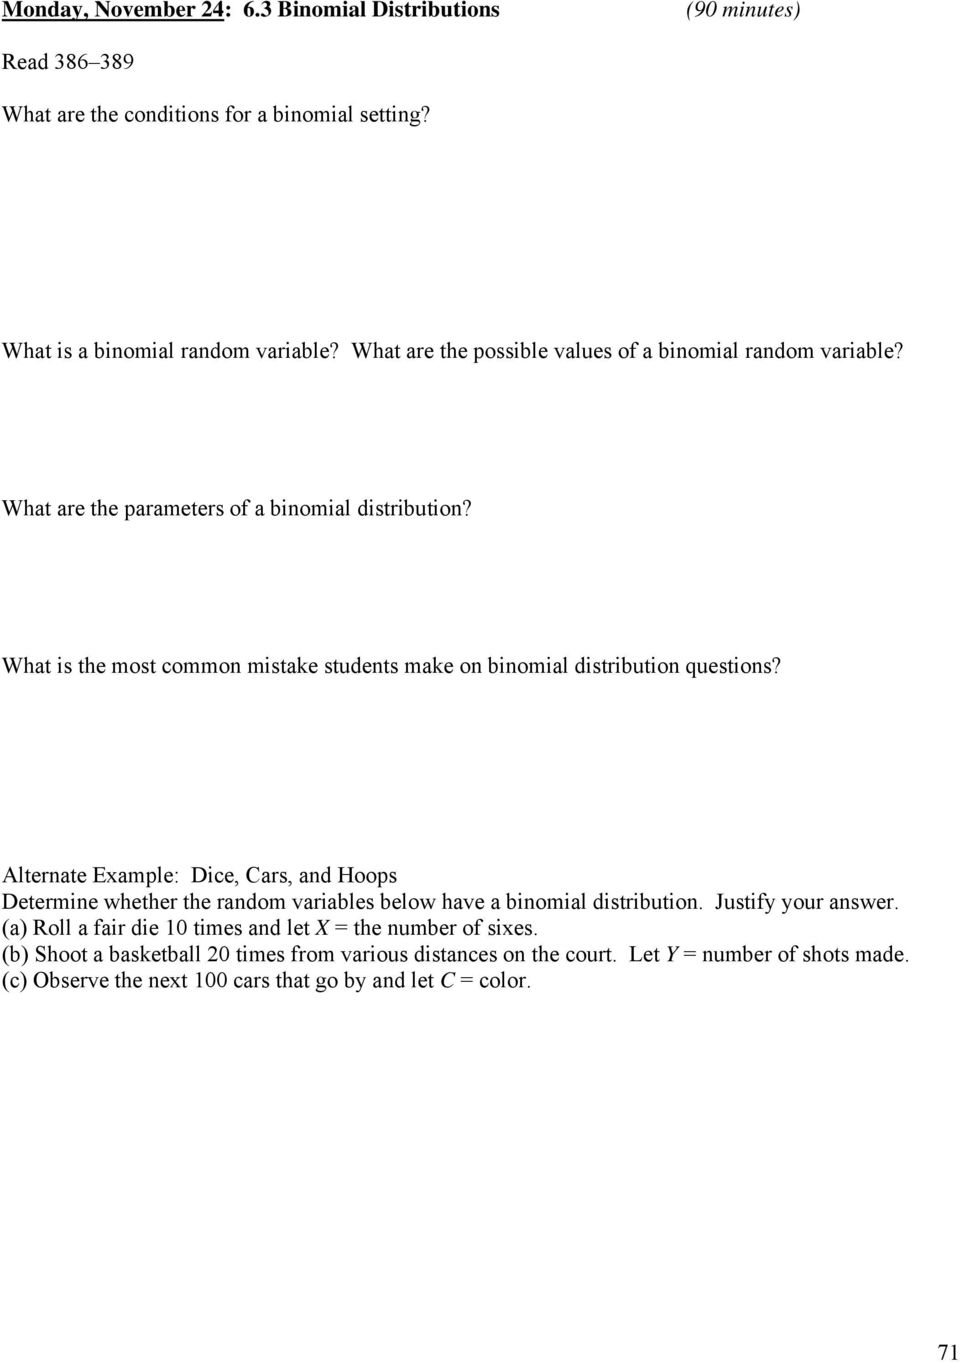 What Is The Mostmon Mistake Students Make On Binomial Distribution  Questions?